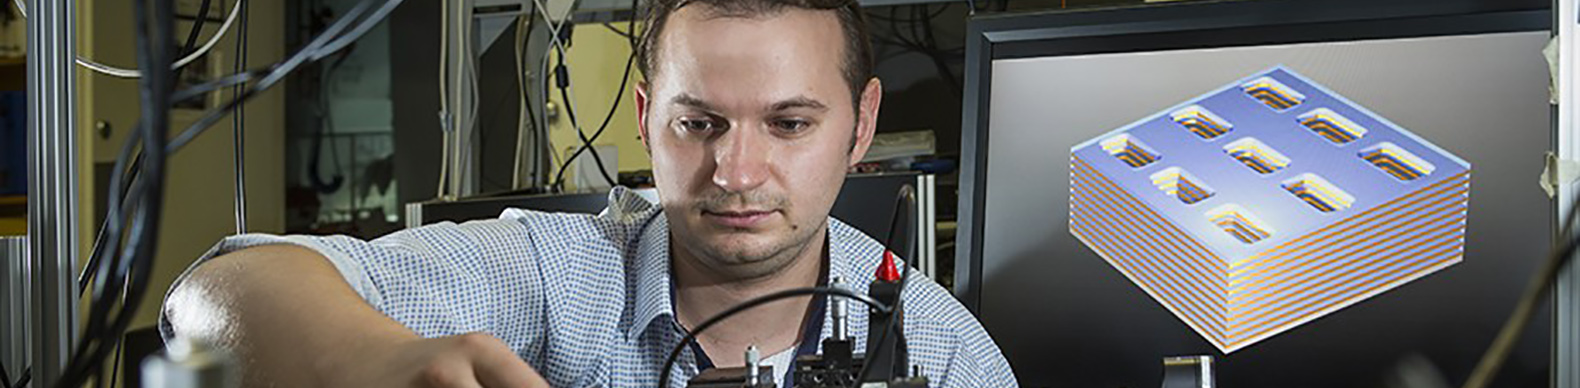 New metamaterial could allow us to generate solar power from heat 24-hours a day